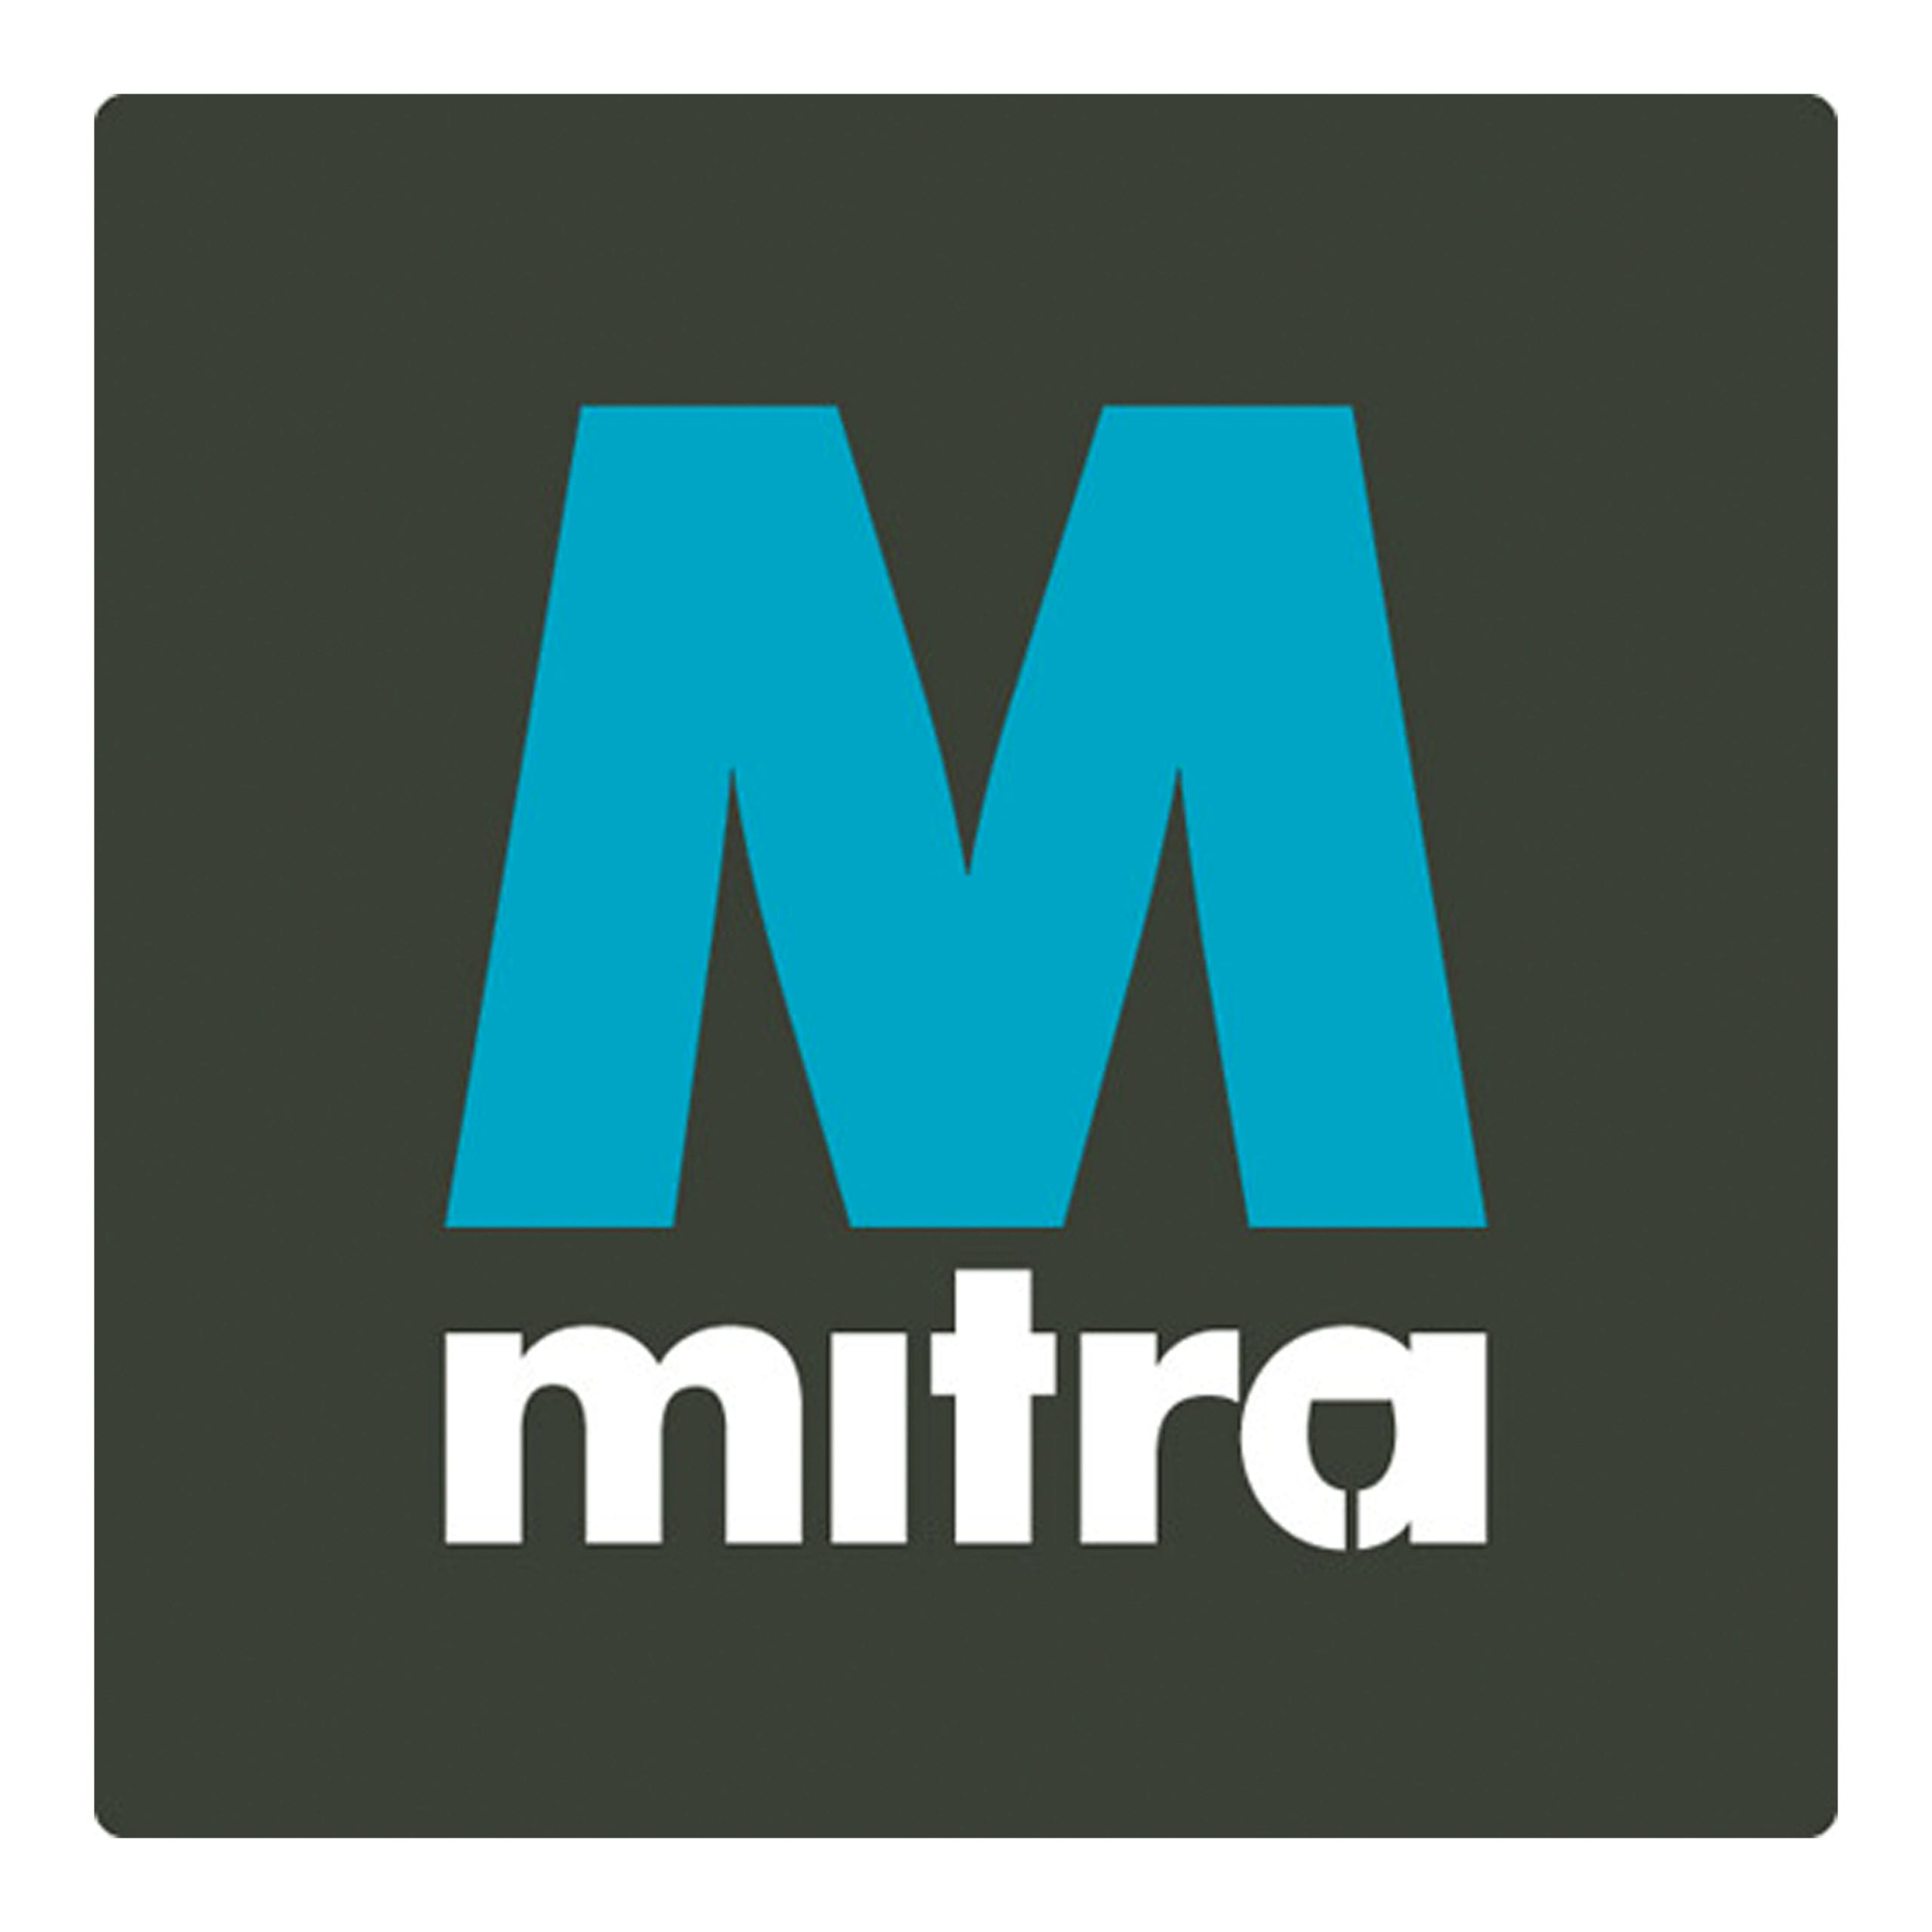 Mitra - Privacy policy